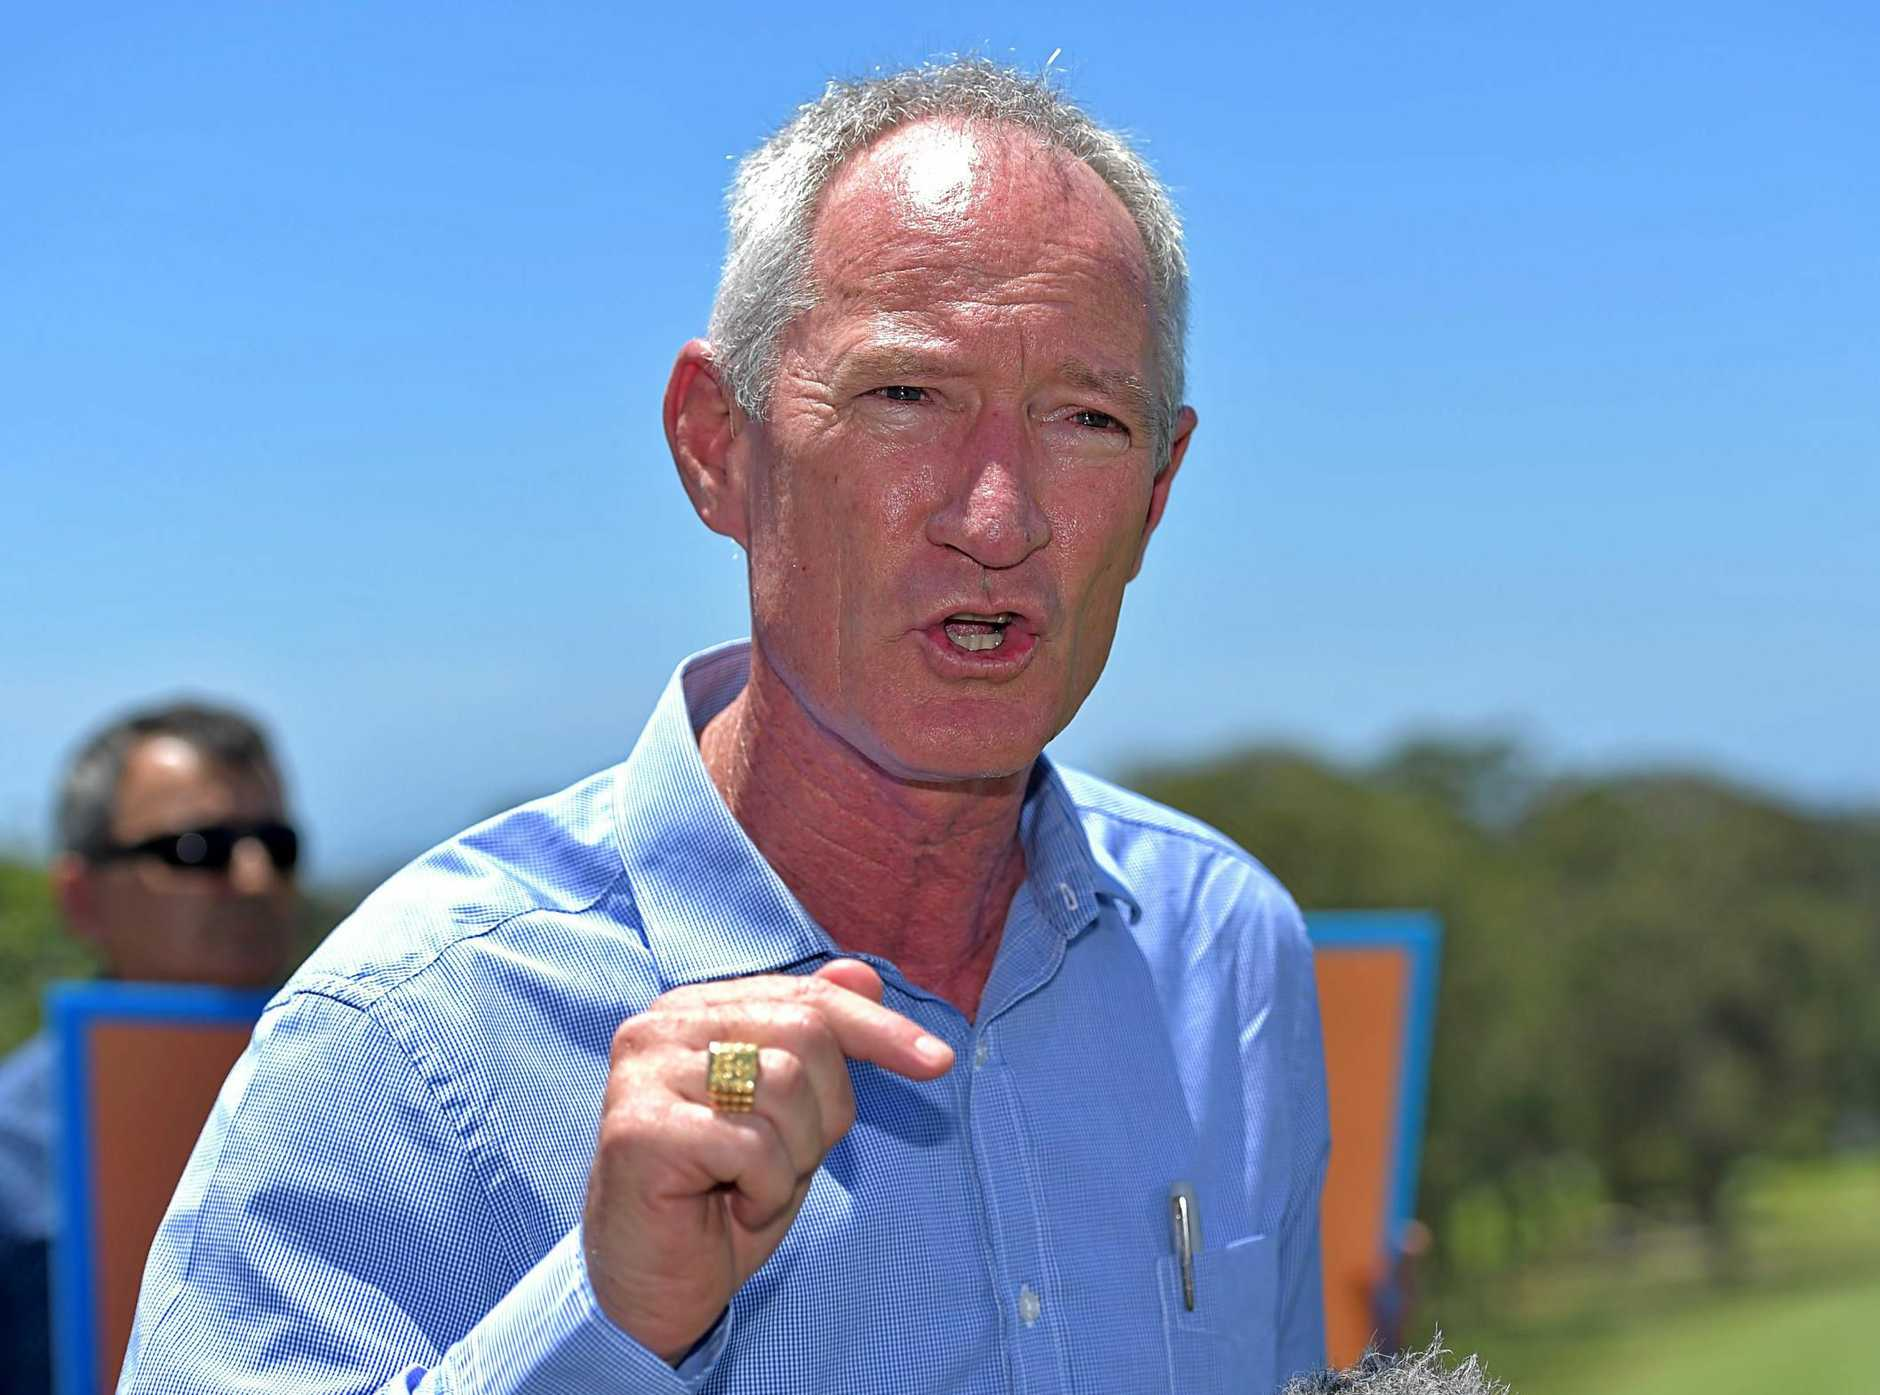 Buderim MP and One Nation convert Steve Dickson is fighting to hold on to his seat in Parliament.